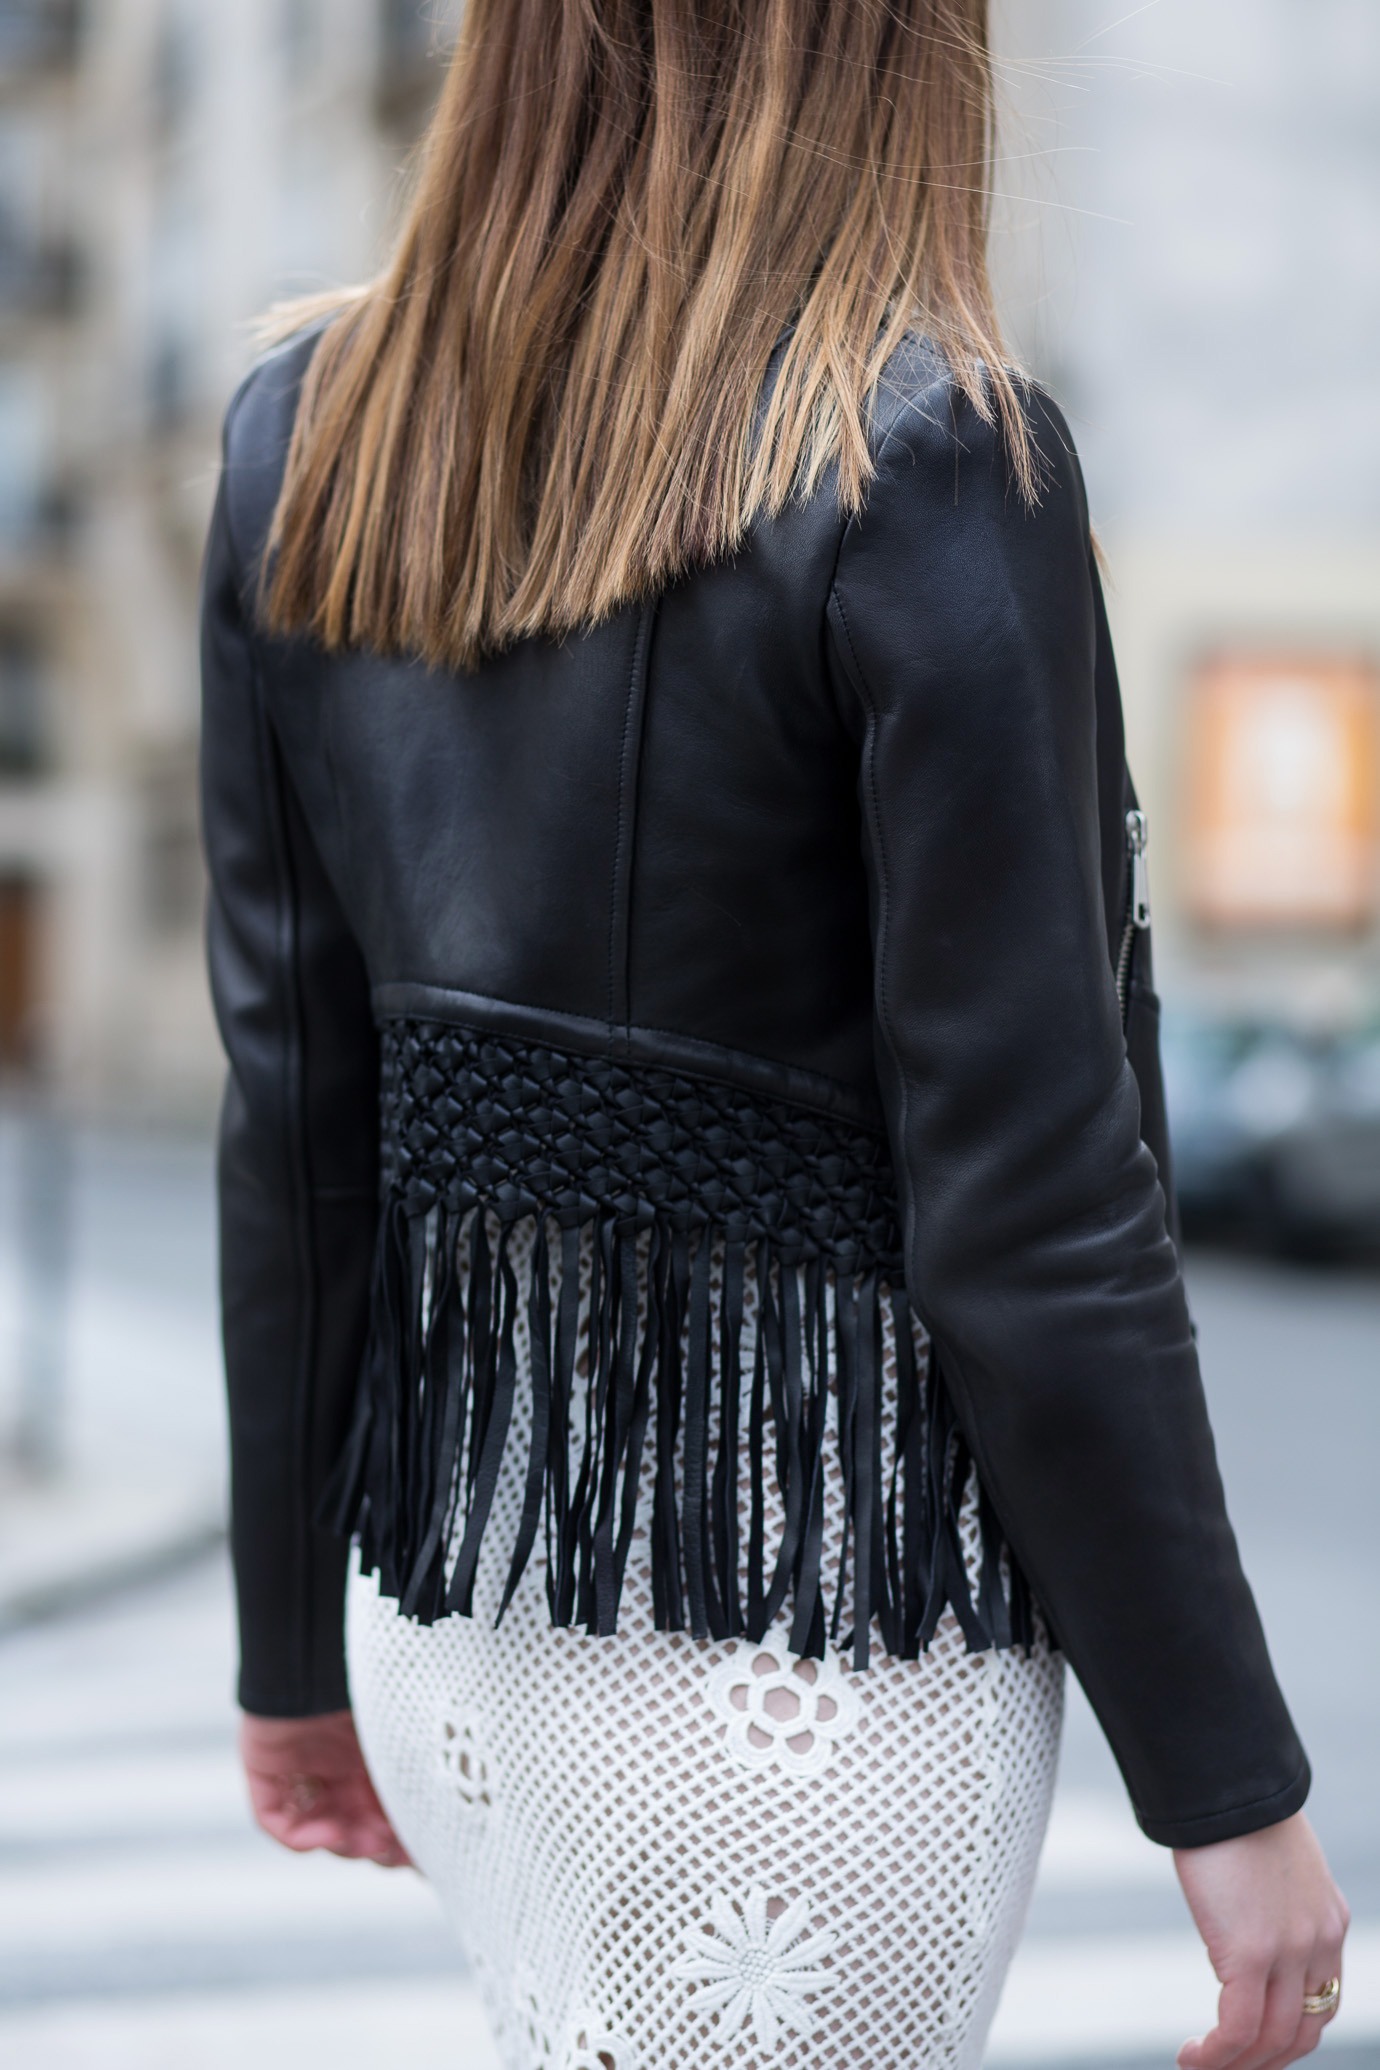 Paris_Lace_and_Leather_6